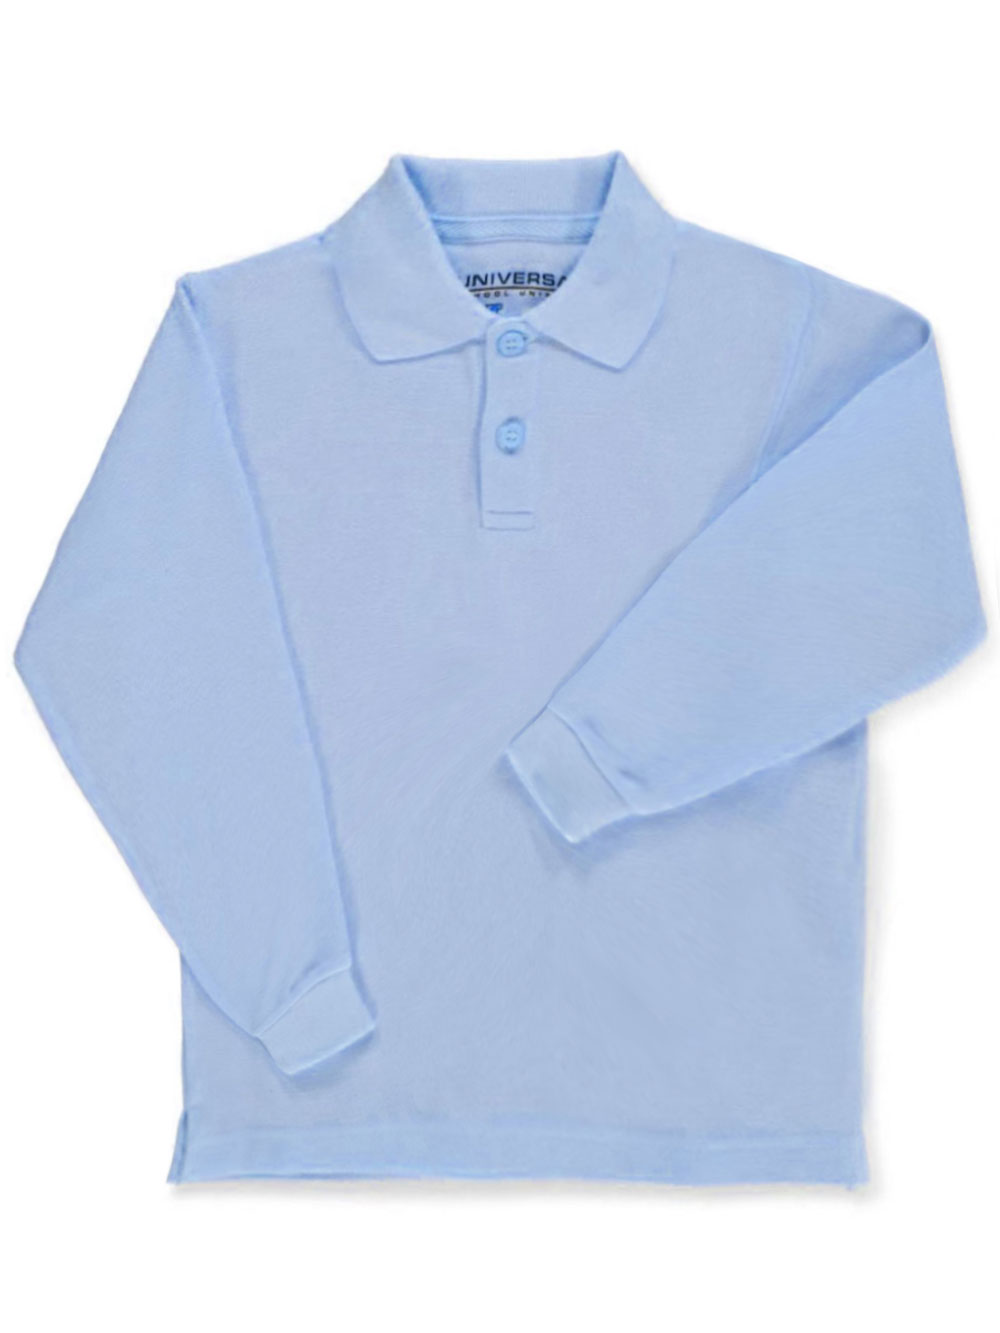 Universal Unisex L/S Pique Polo (Sizes 4 - 7)